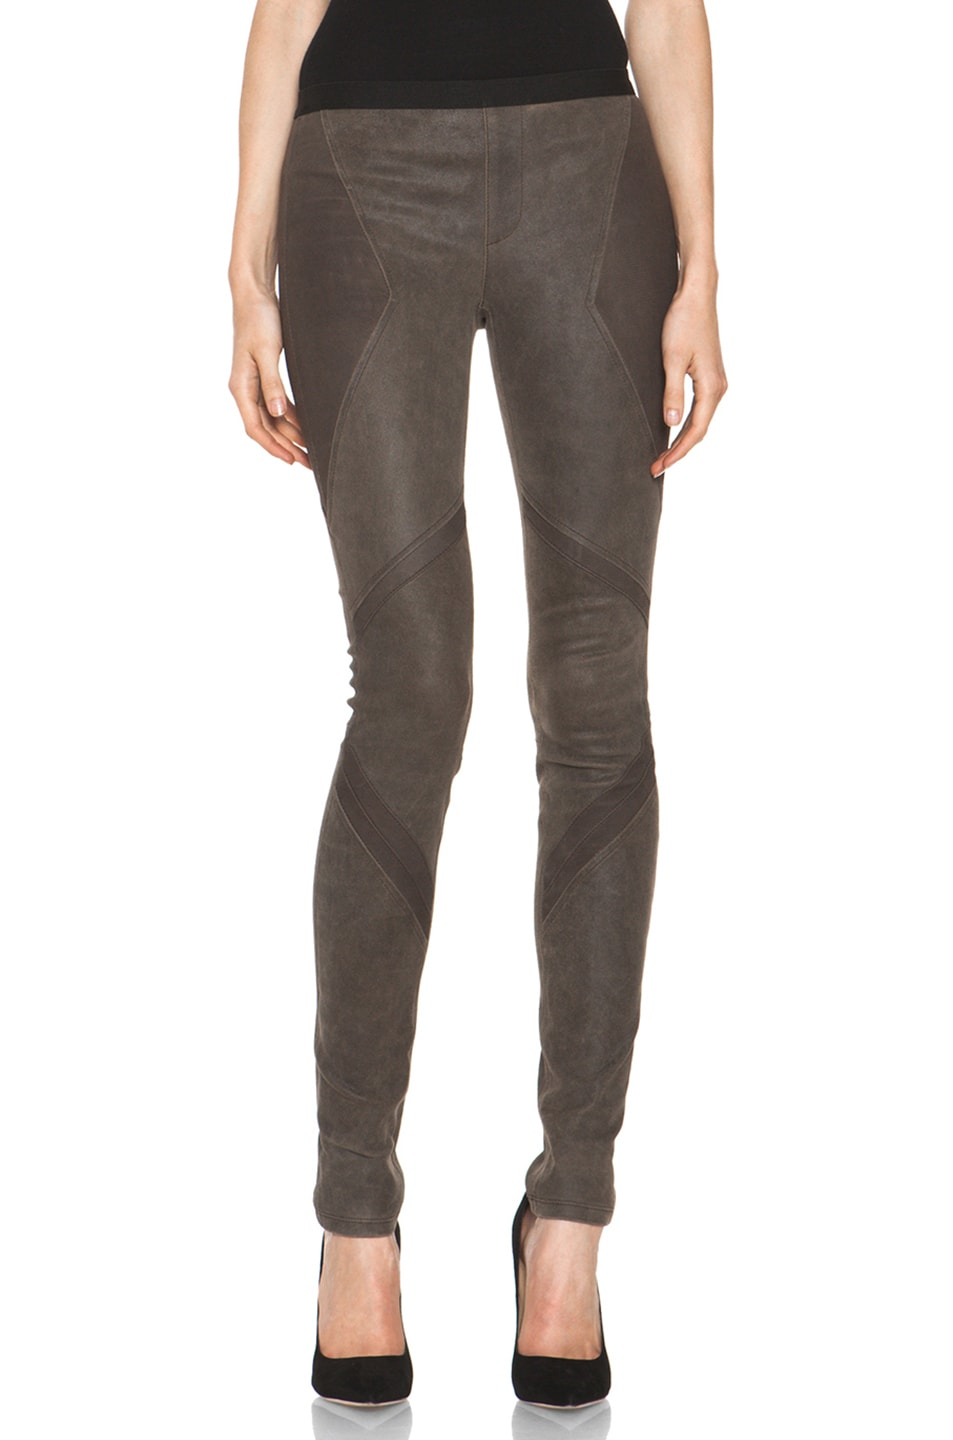 Image 1 of Helmut Lang Patina Stretch Cheyenne Leather Armor Legging in Deer